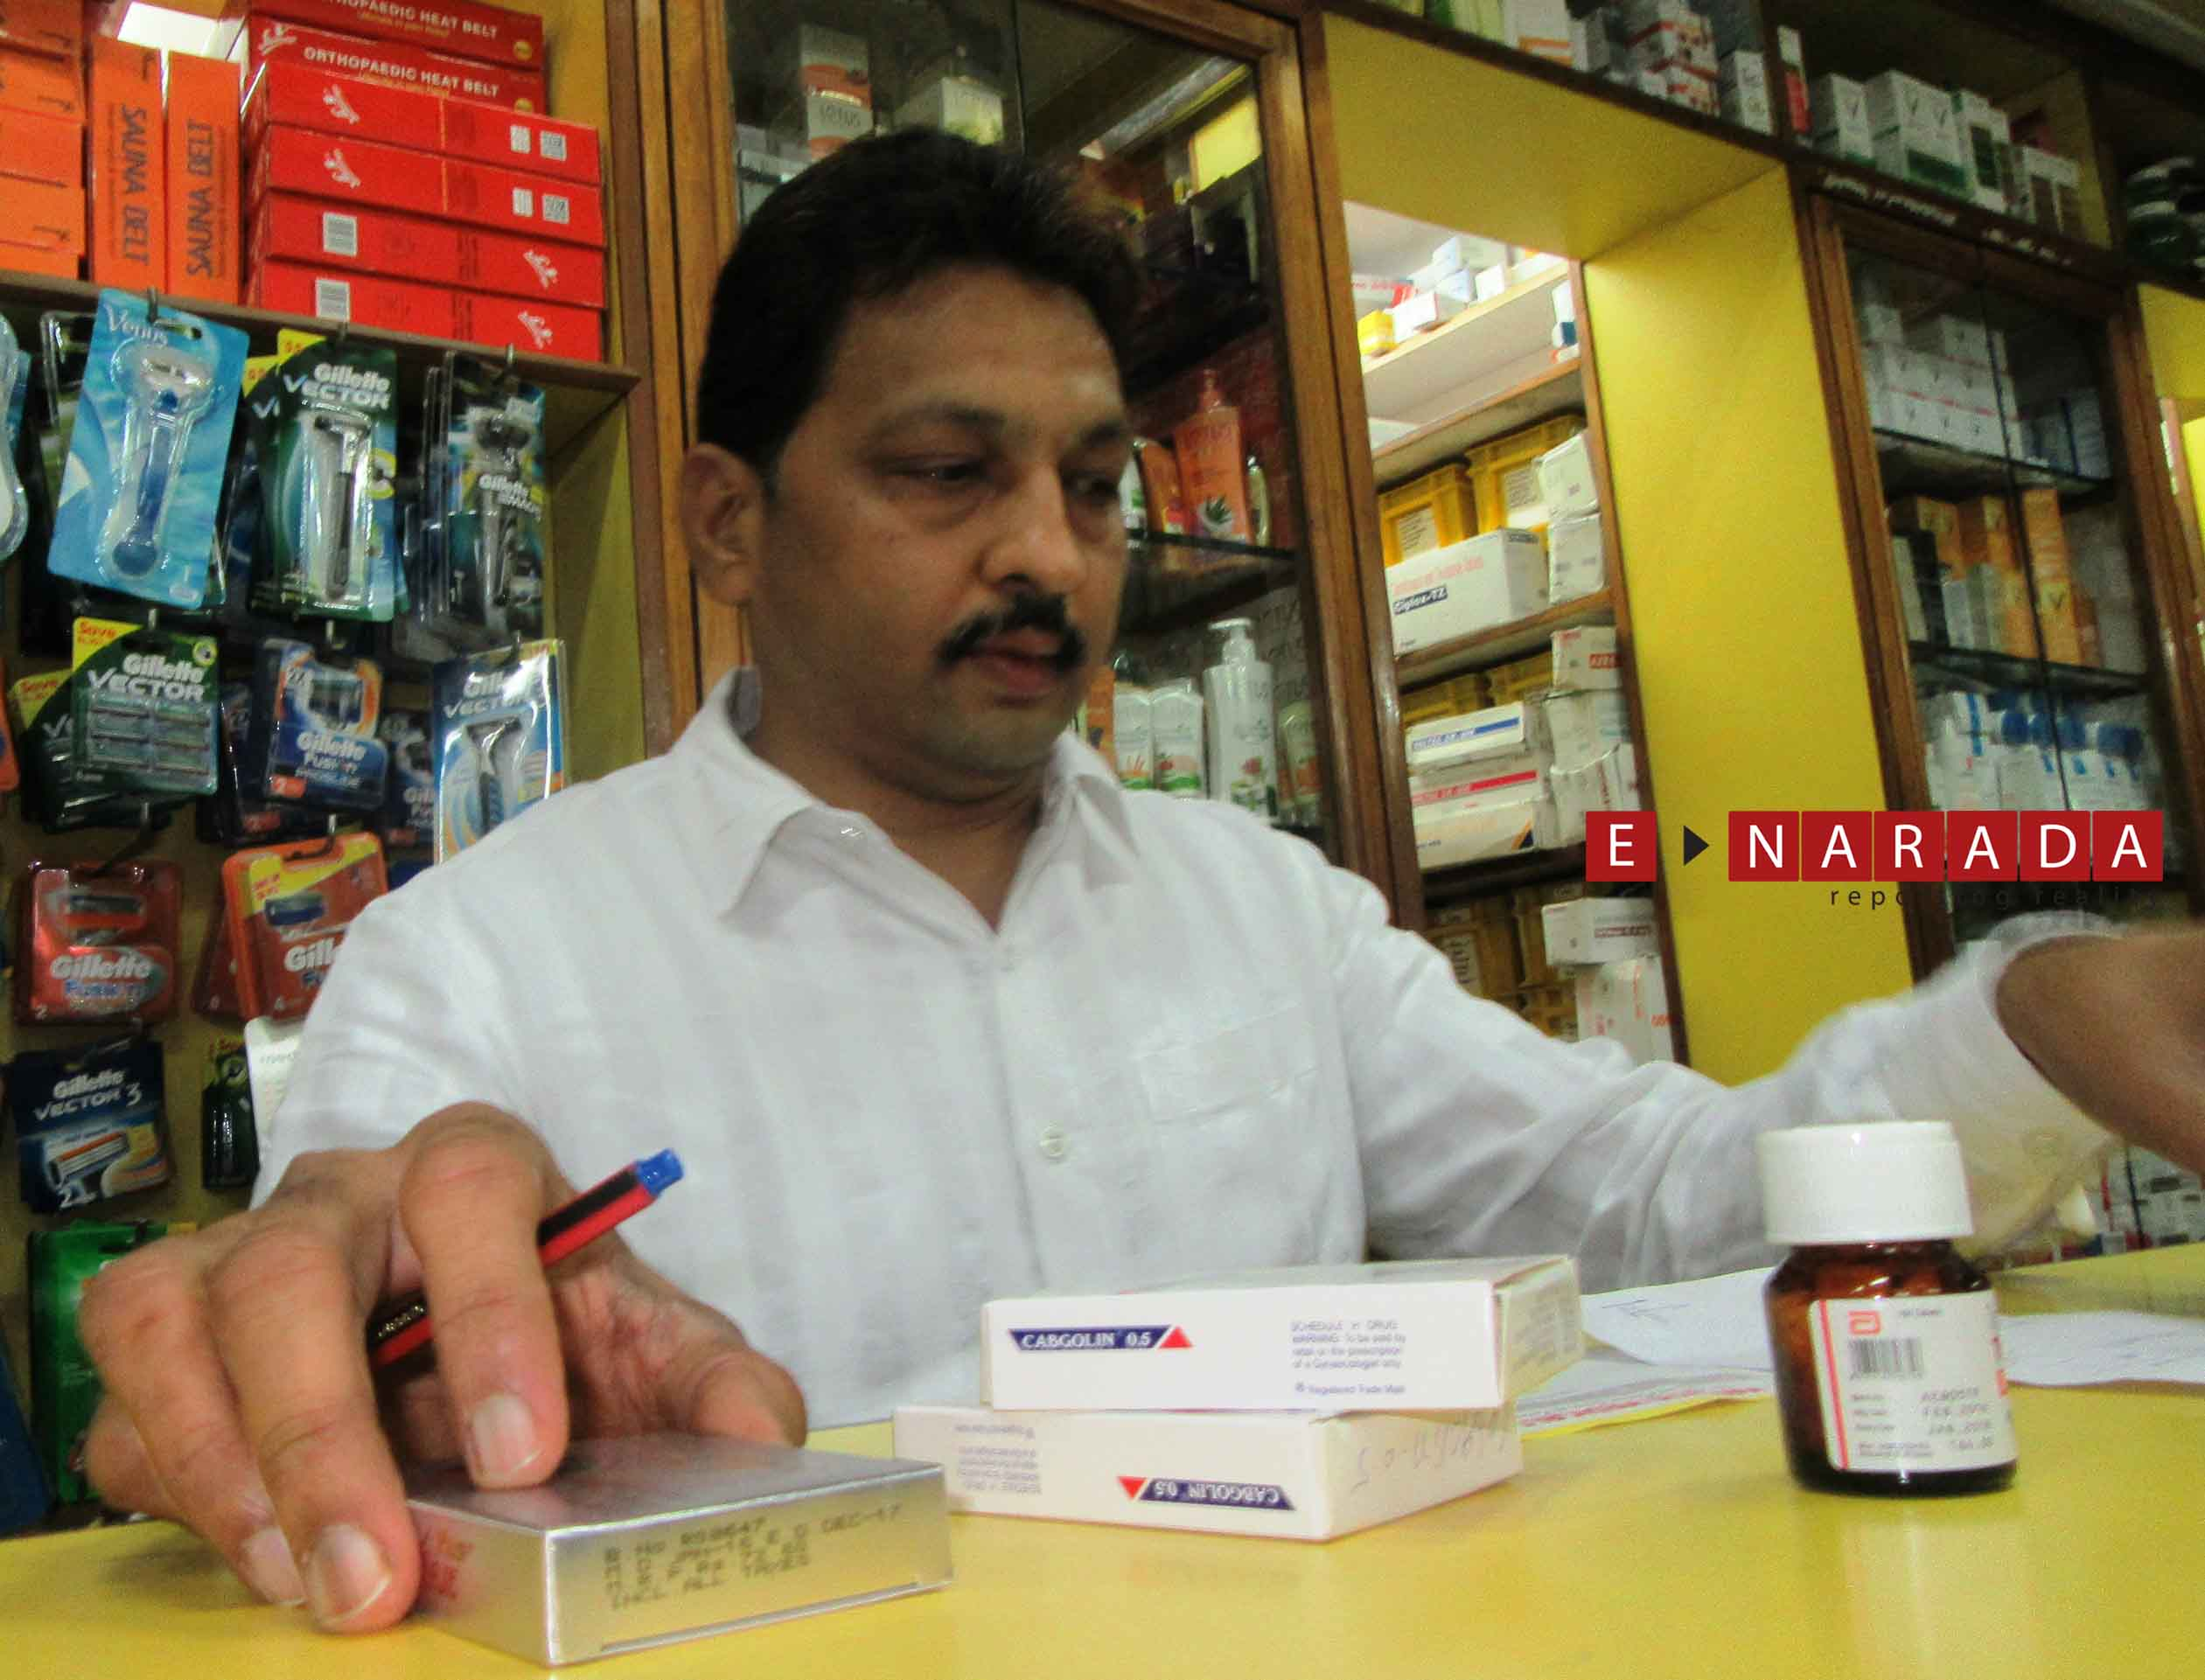 general enarada com arivu pharmacist s pill for g schools